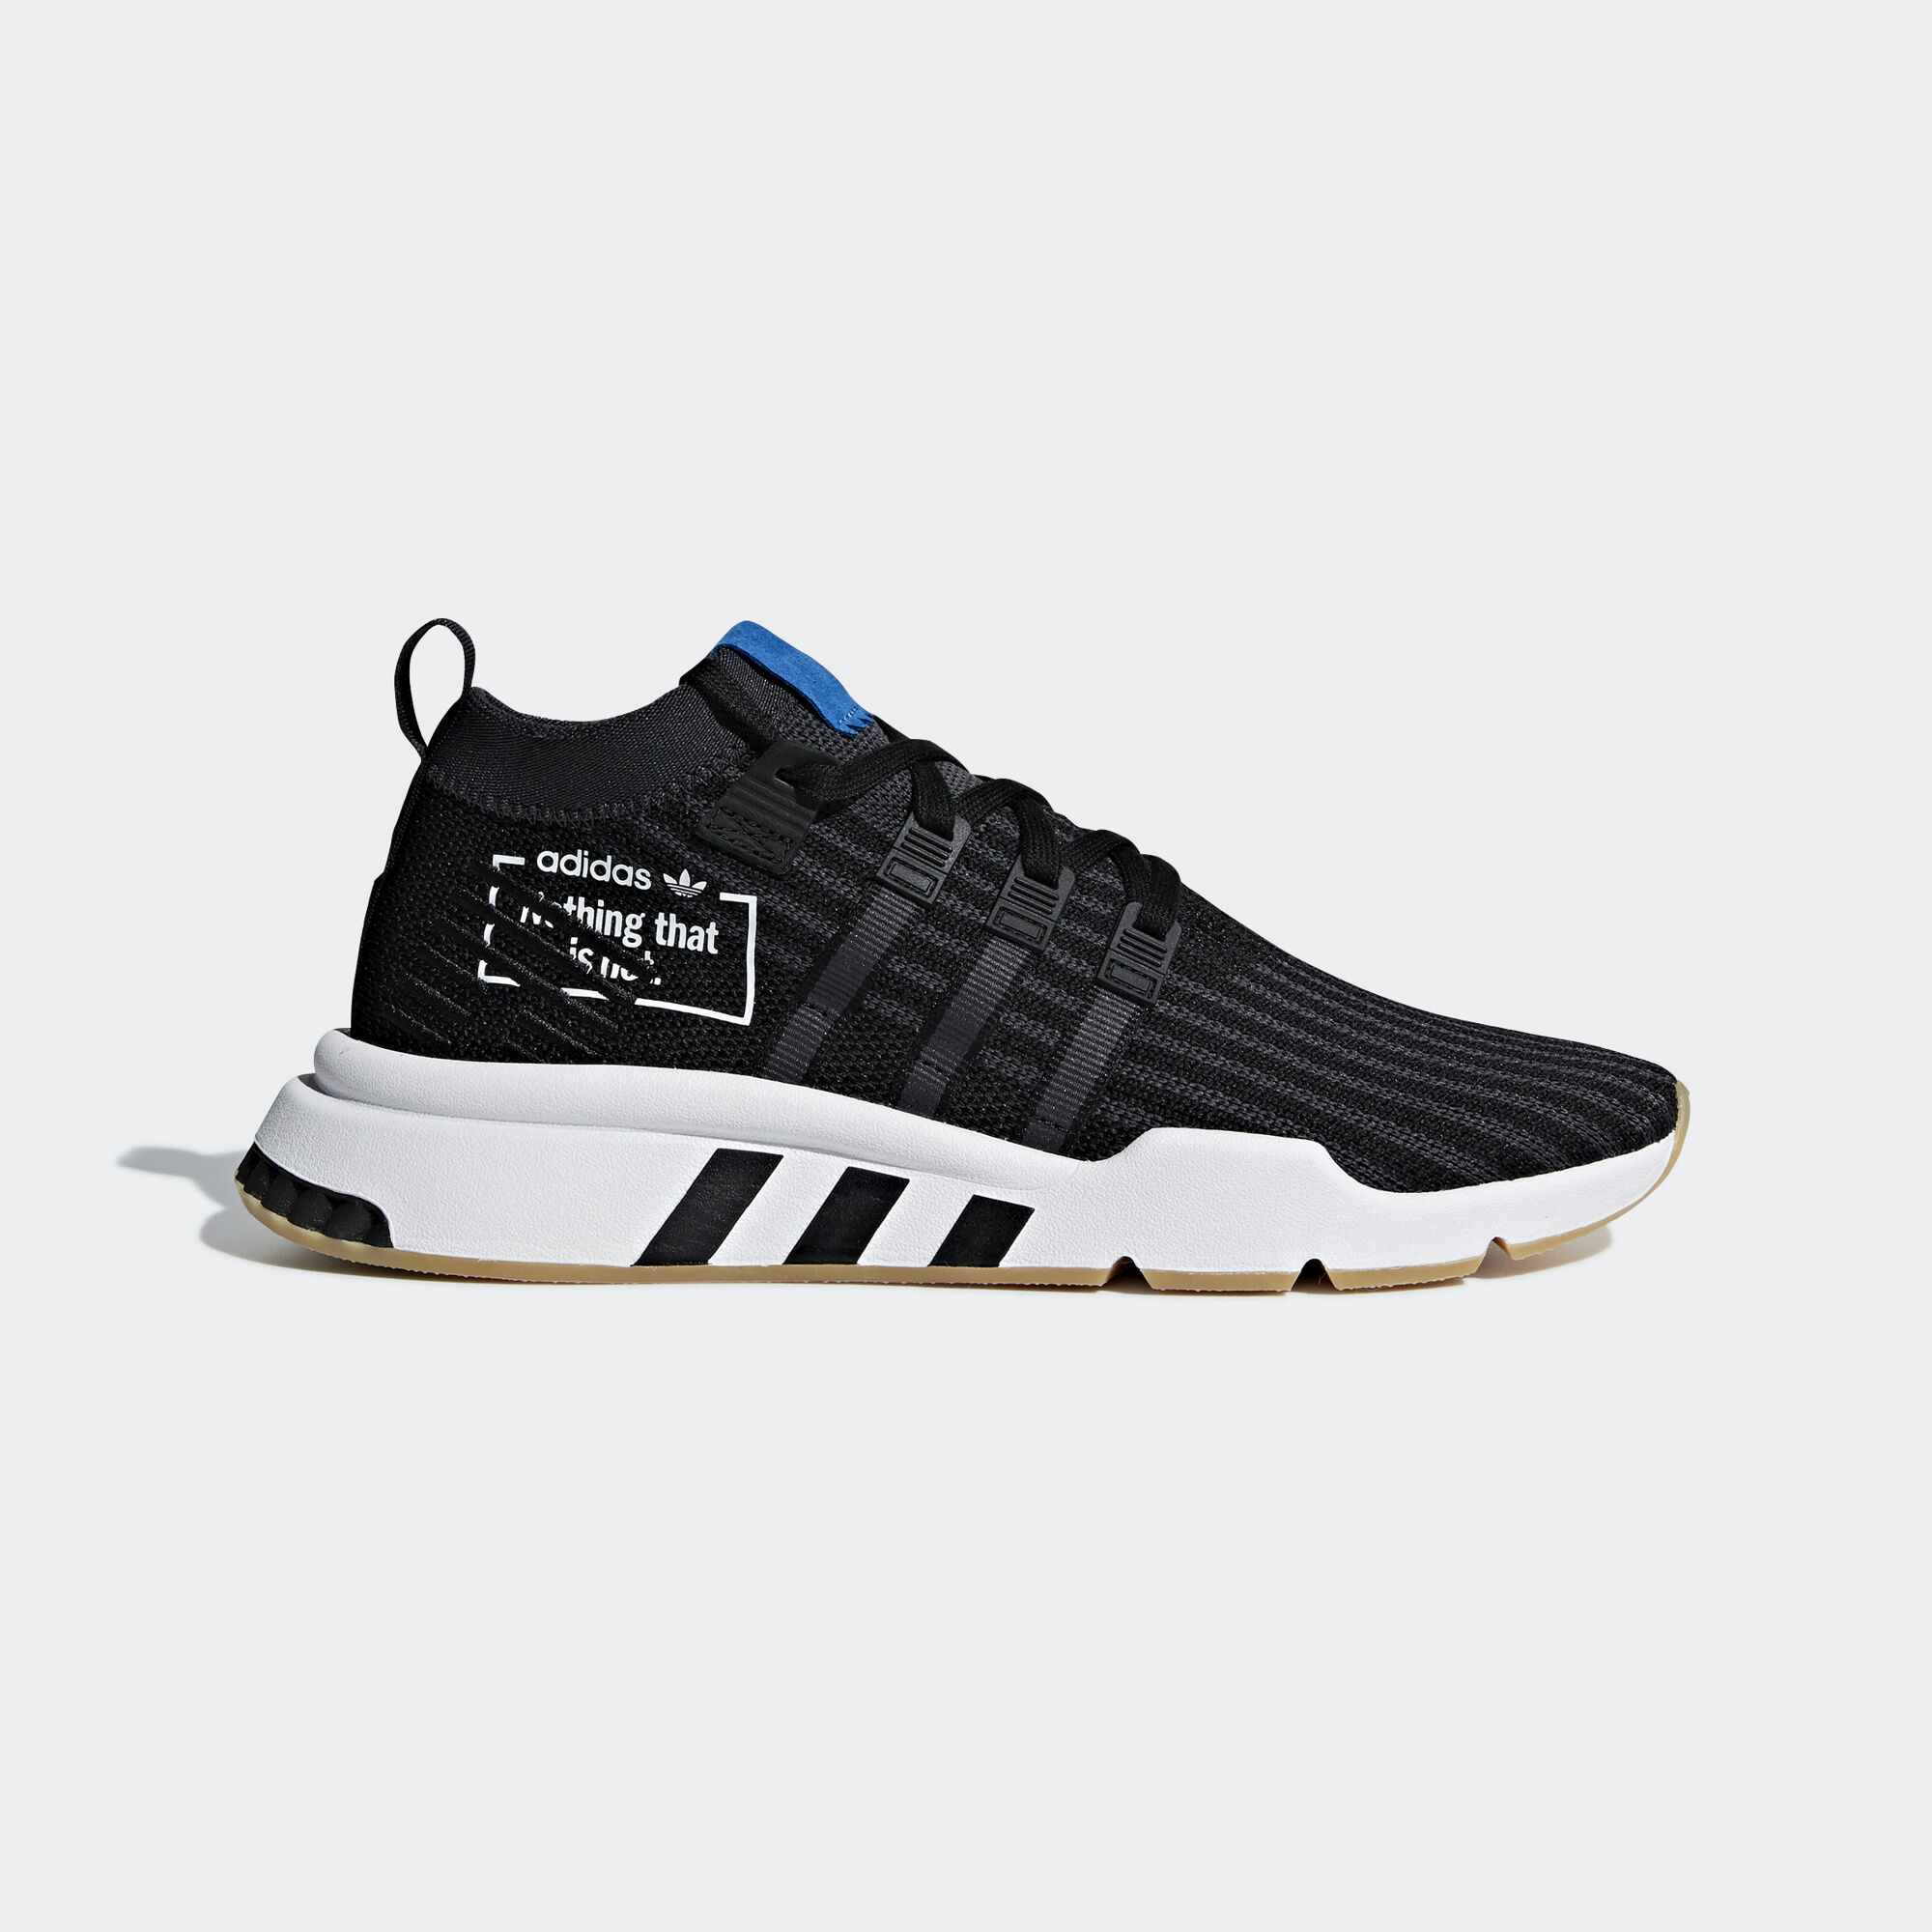 best service 4d1c3 06e40 adidas EQT Support Mid ADV Shoes - Black  adidas AsiaMiddle East